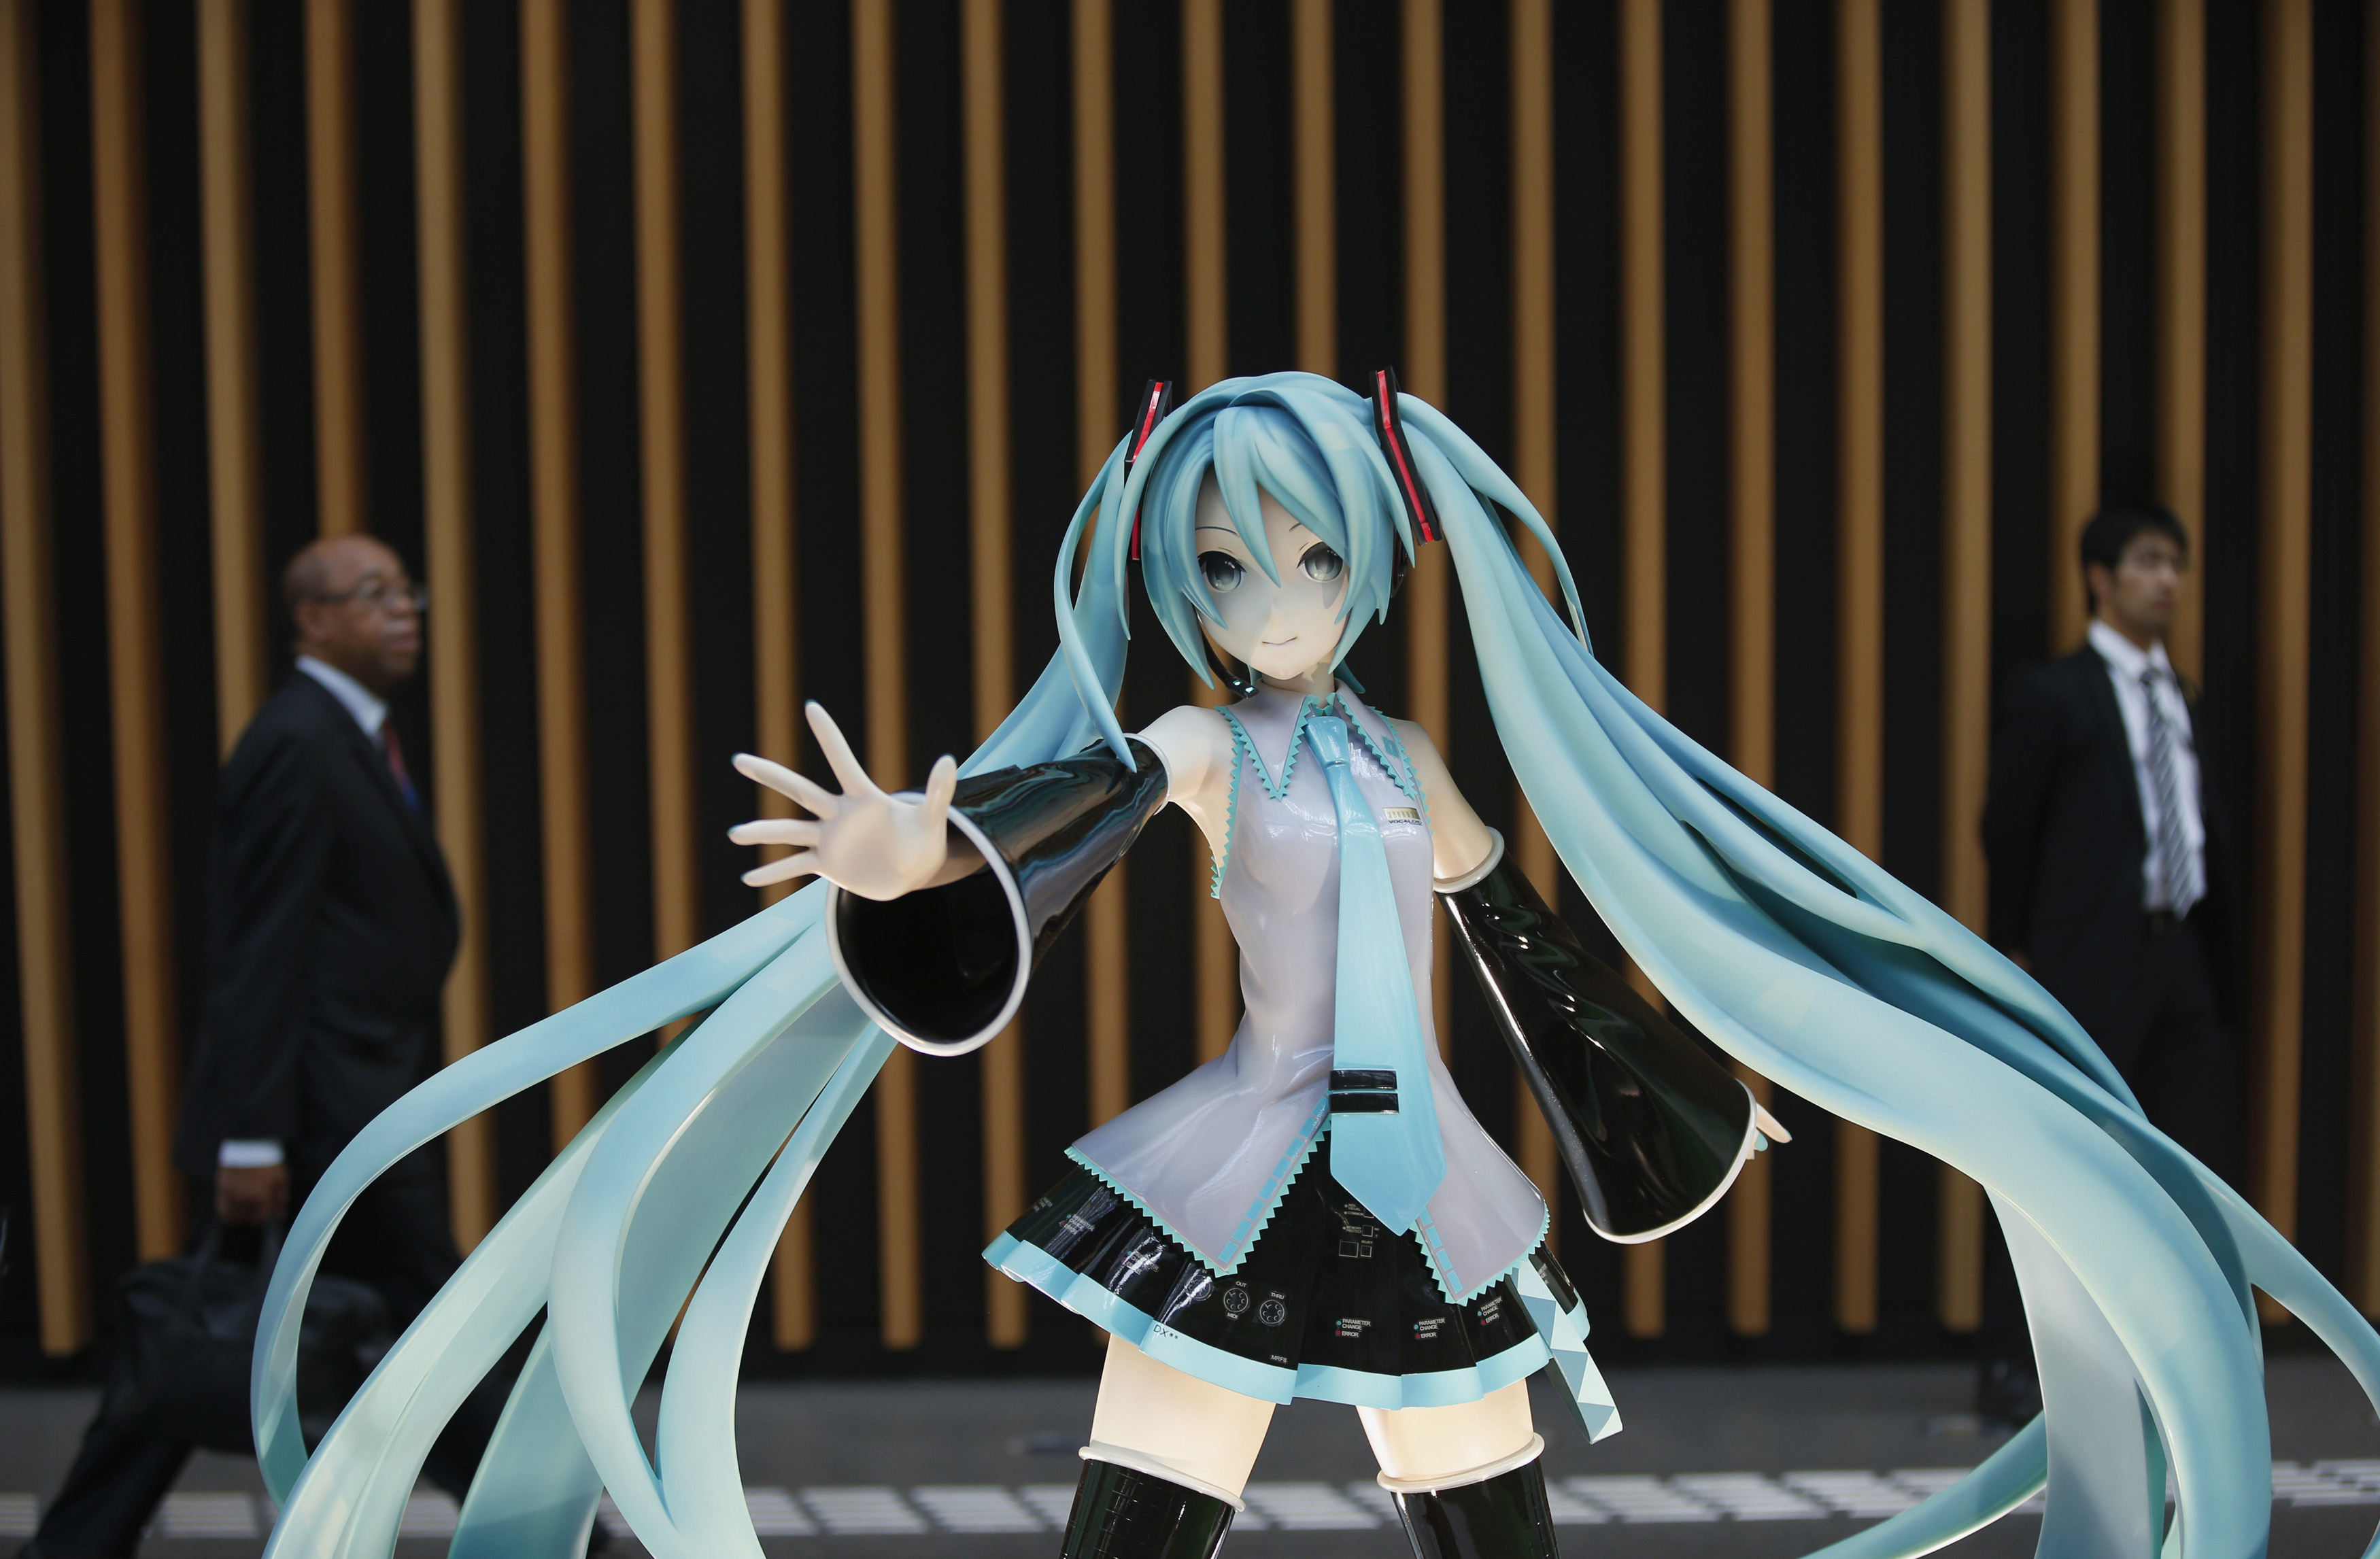 A figure of computer-generated pop star Hatsune Miku at the venue of the Annual Meetings of the International Monetary Fund and the World Bank Group in Tokyo on Oct. 9, 2012.